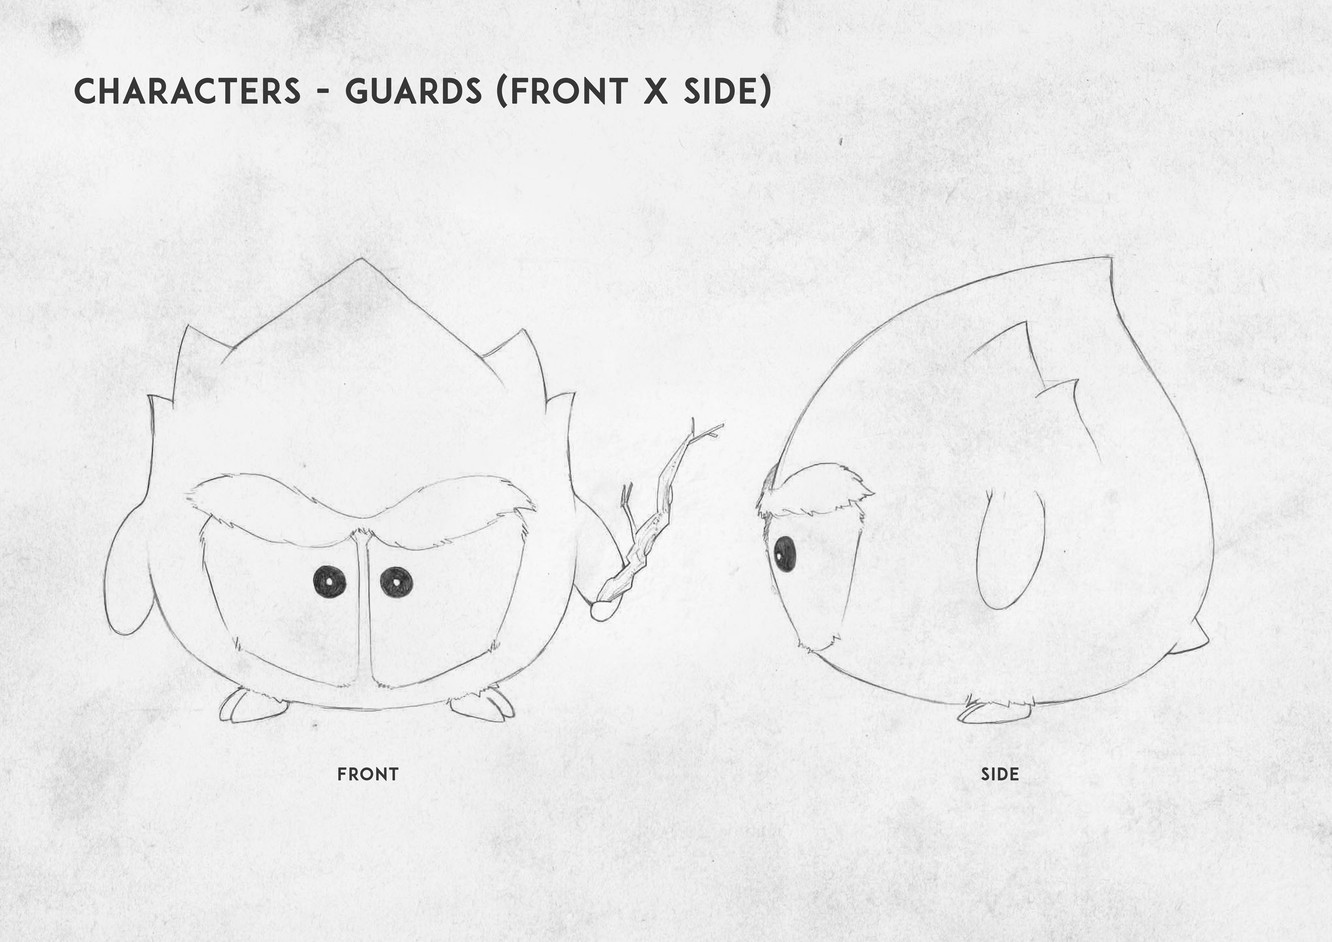 Character - Guards